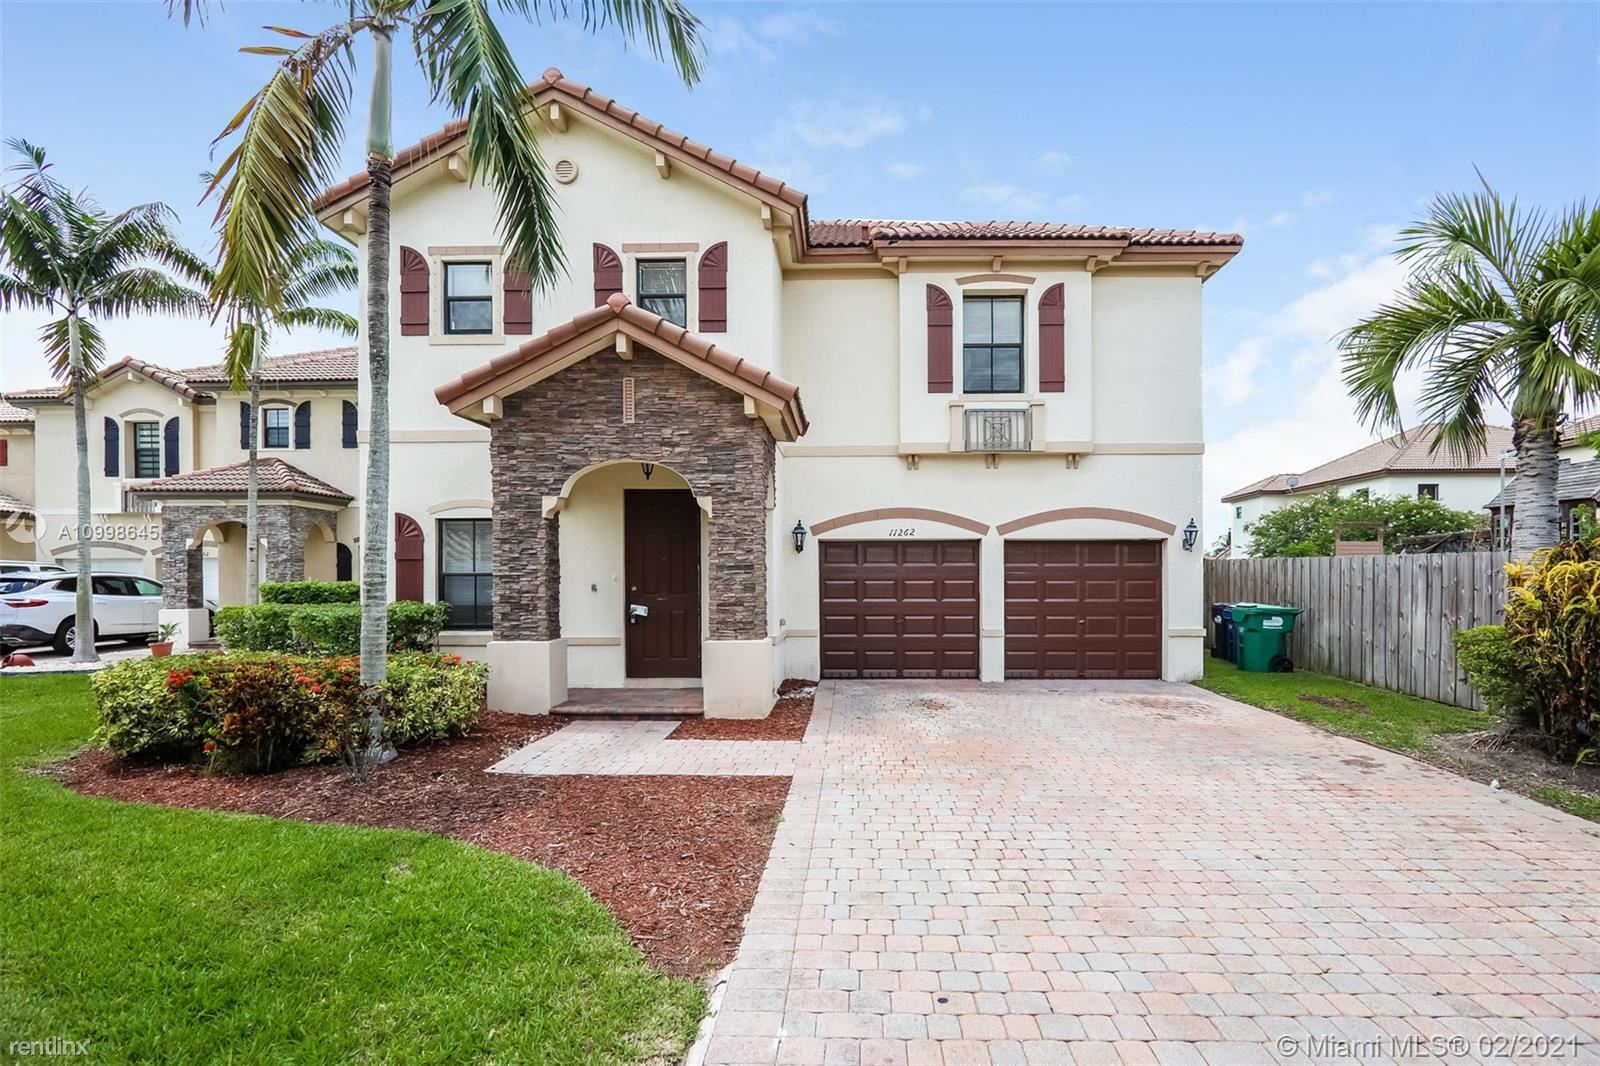 11262 SW 243rd Ter, Homestead, FL - $2,645 USD/ month